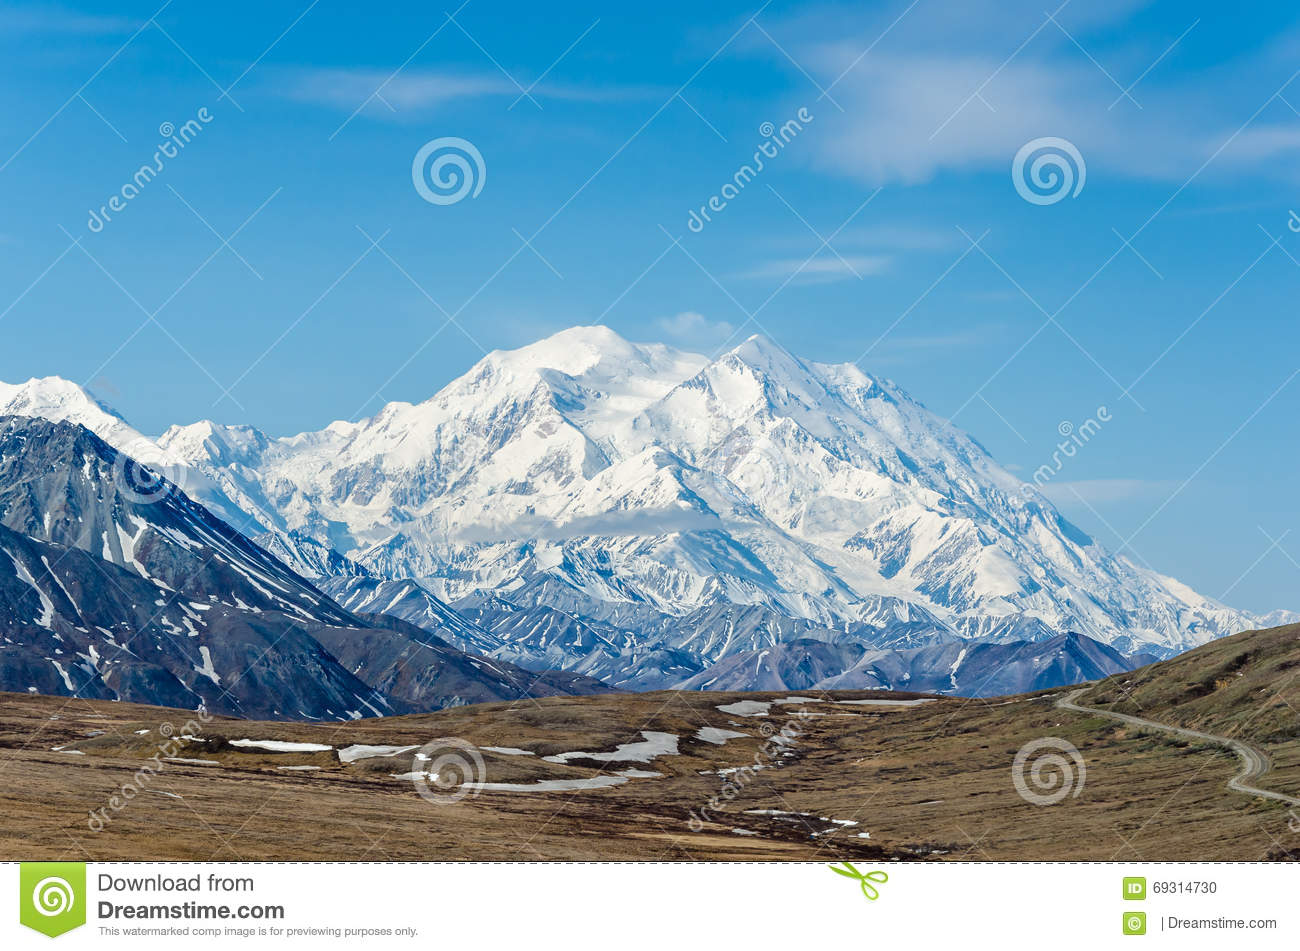 Mt McKinley - highest mountain in North America on a sunny day with blue sky